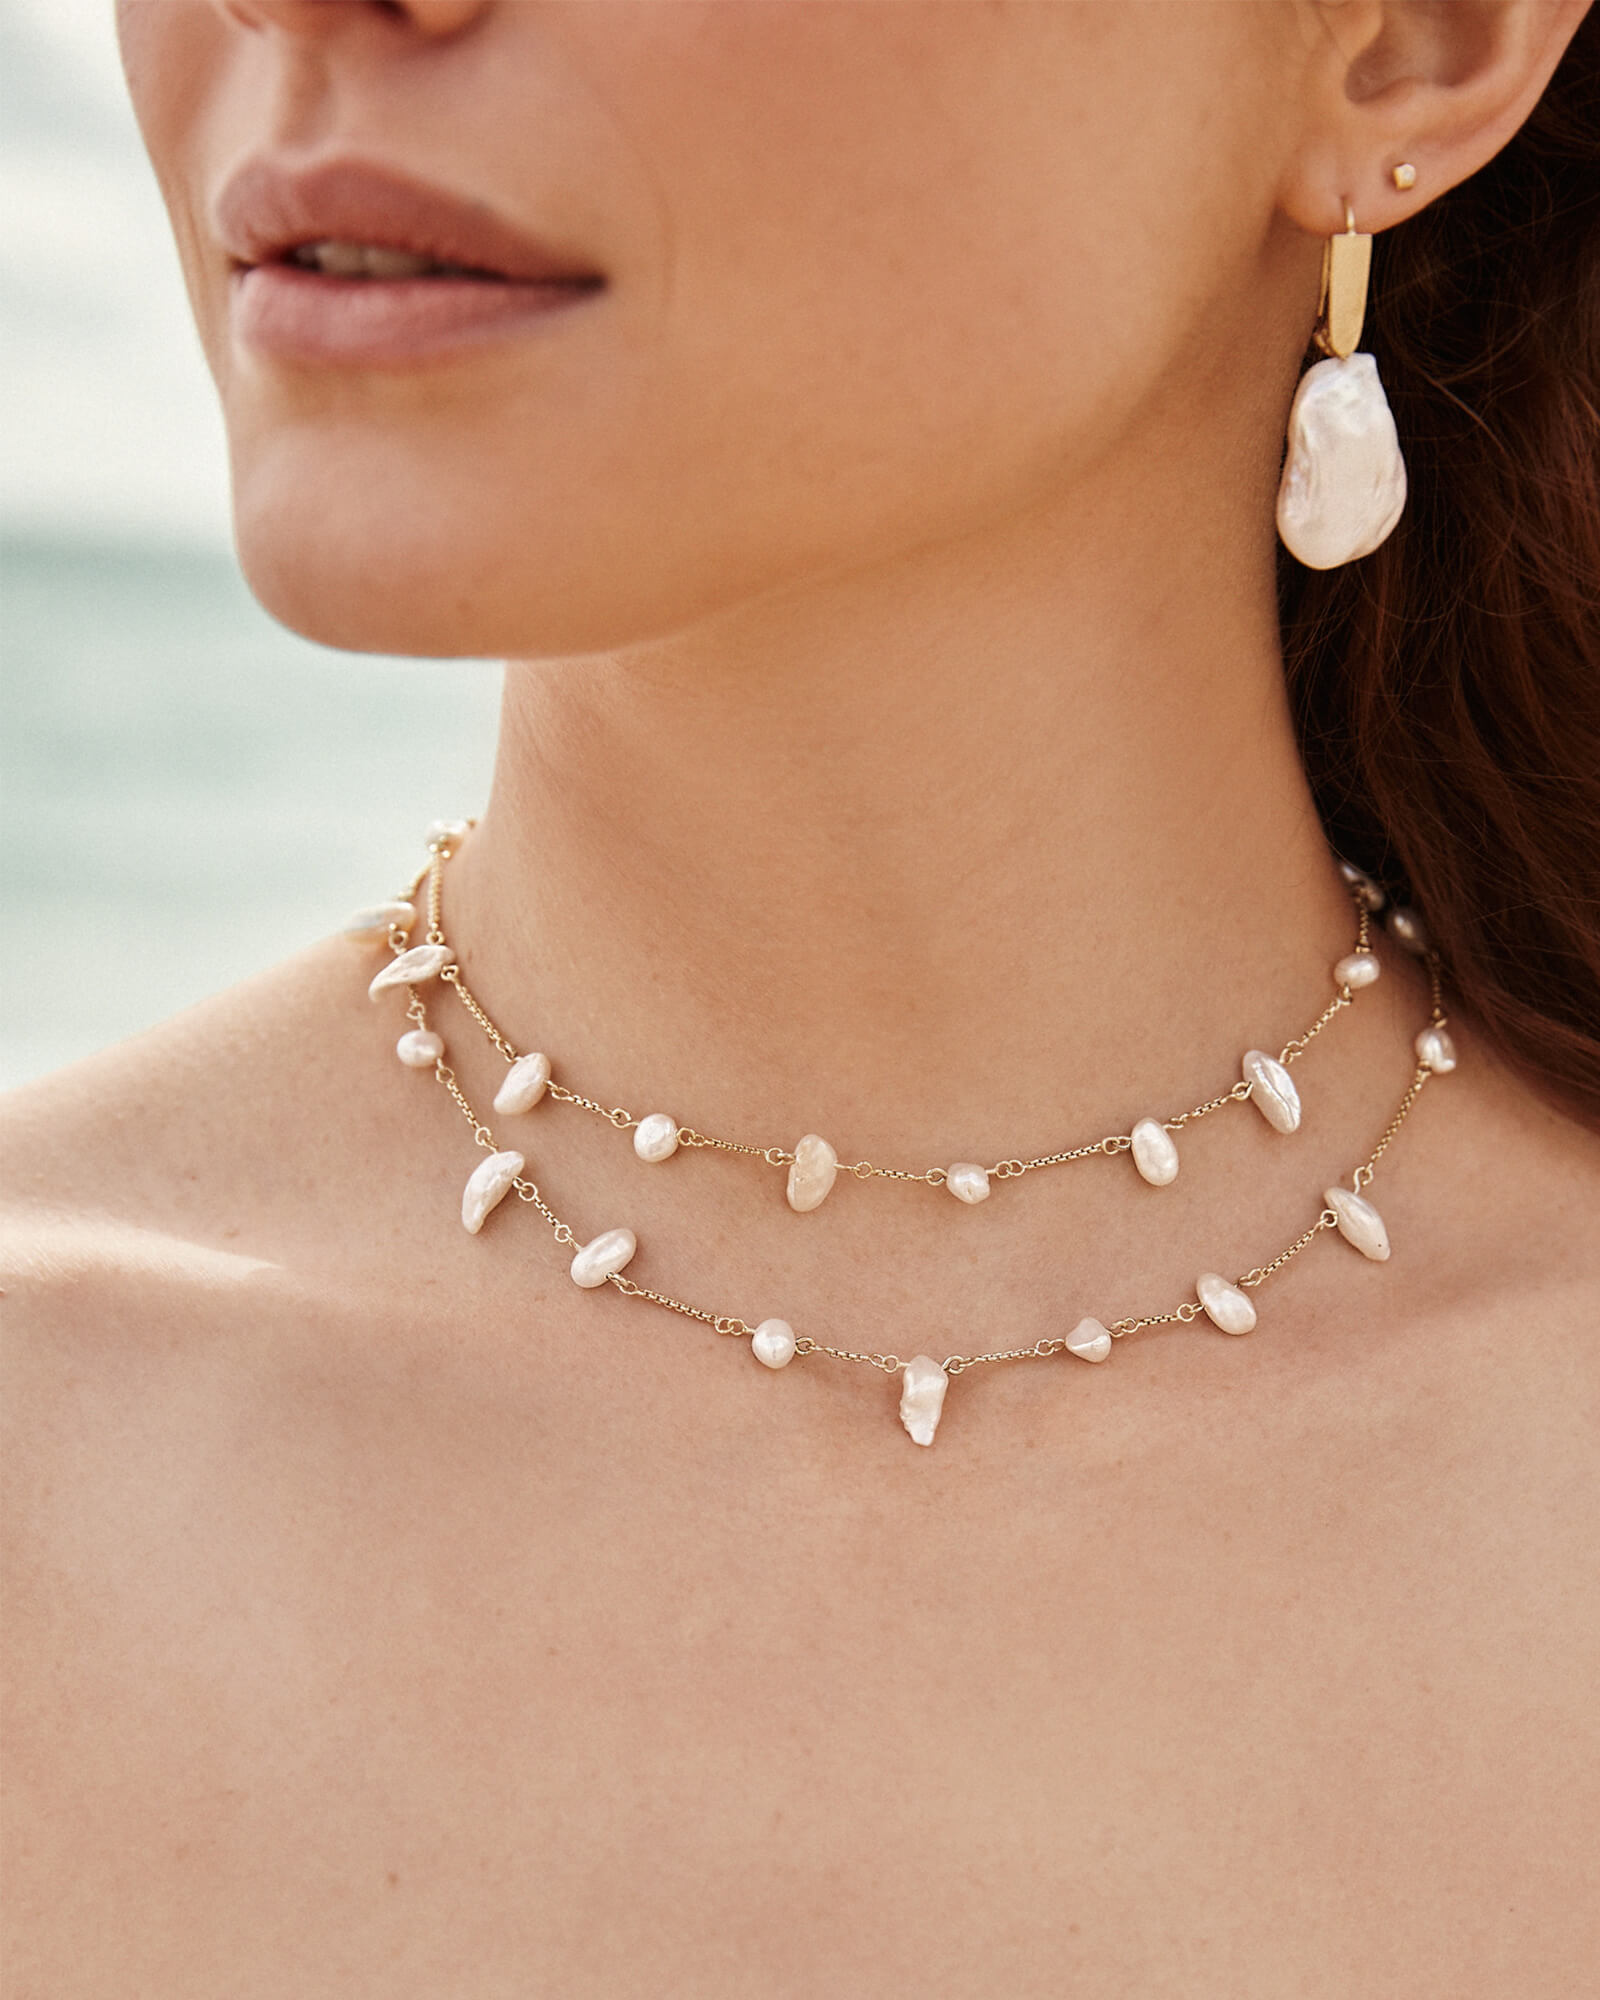 Krissa Gold Choker Necklace in Pearl